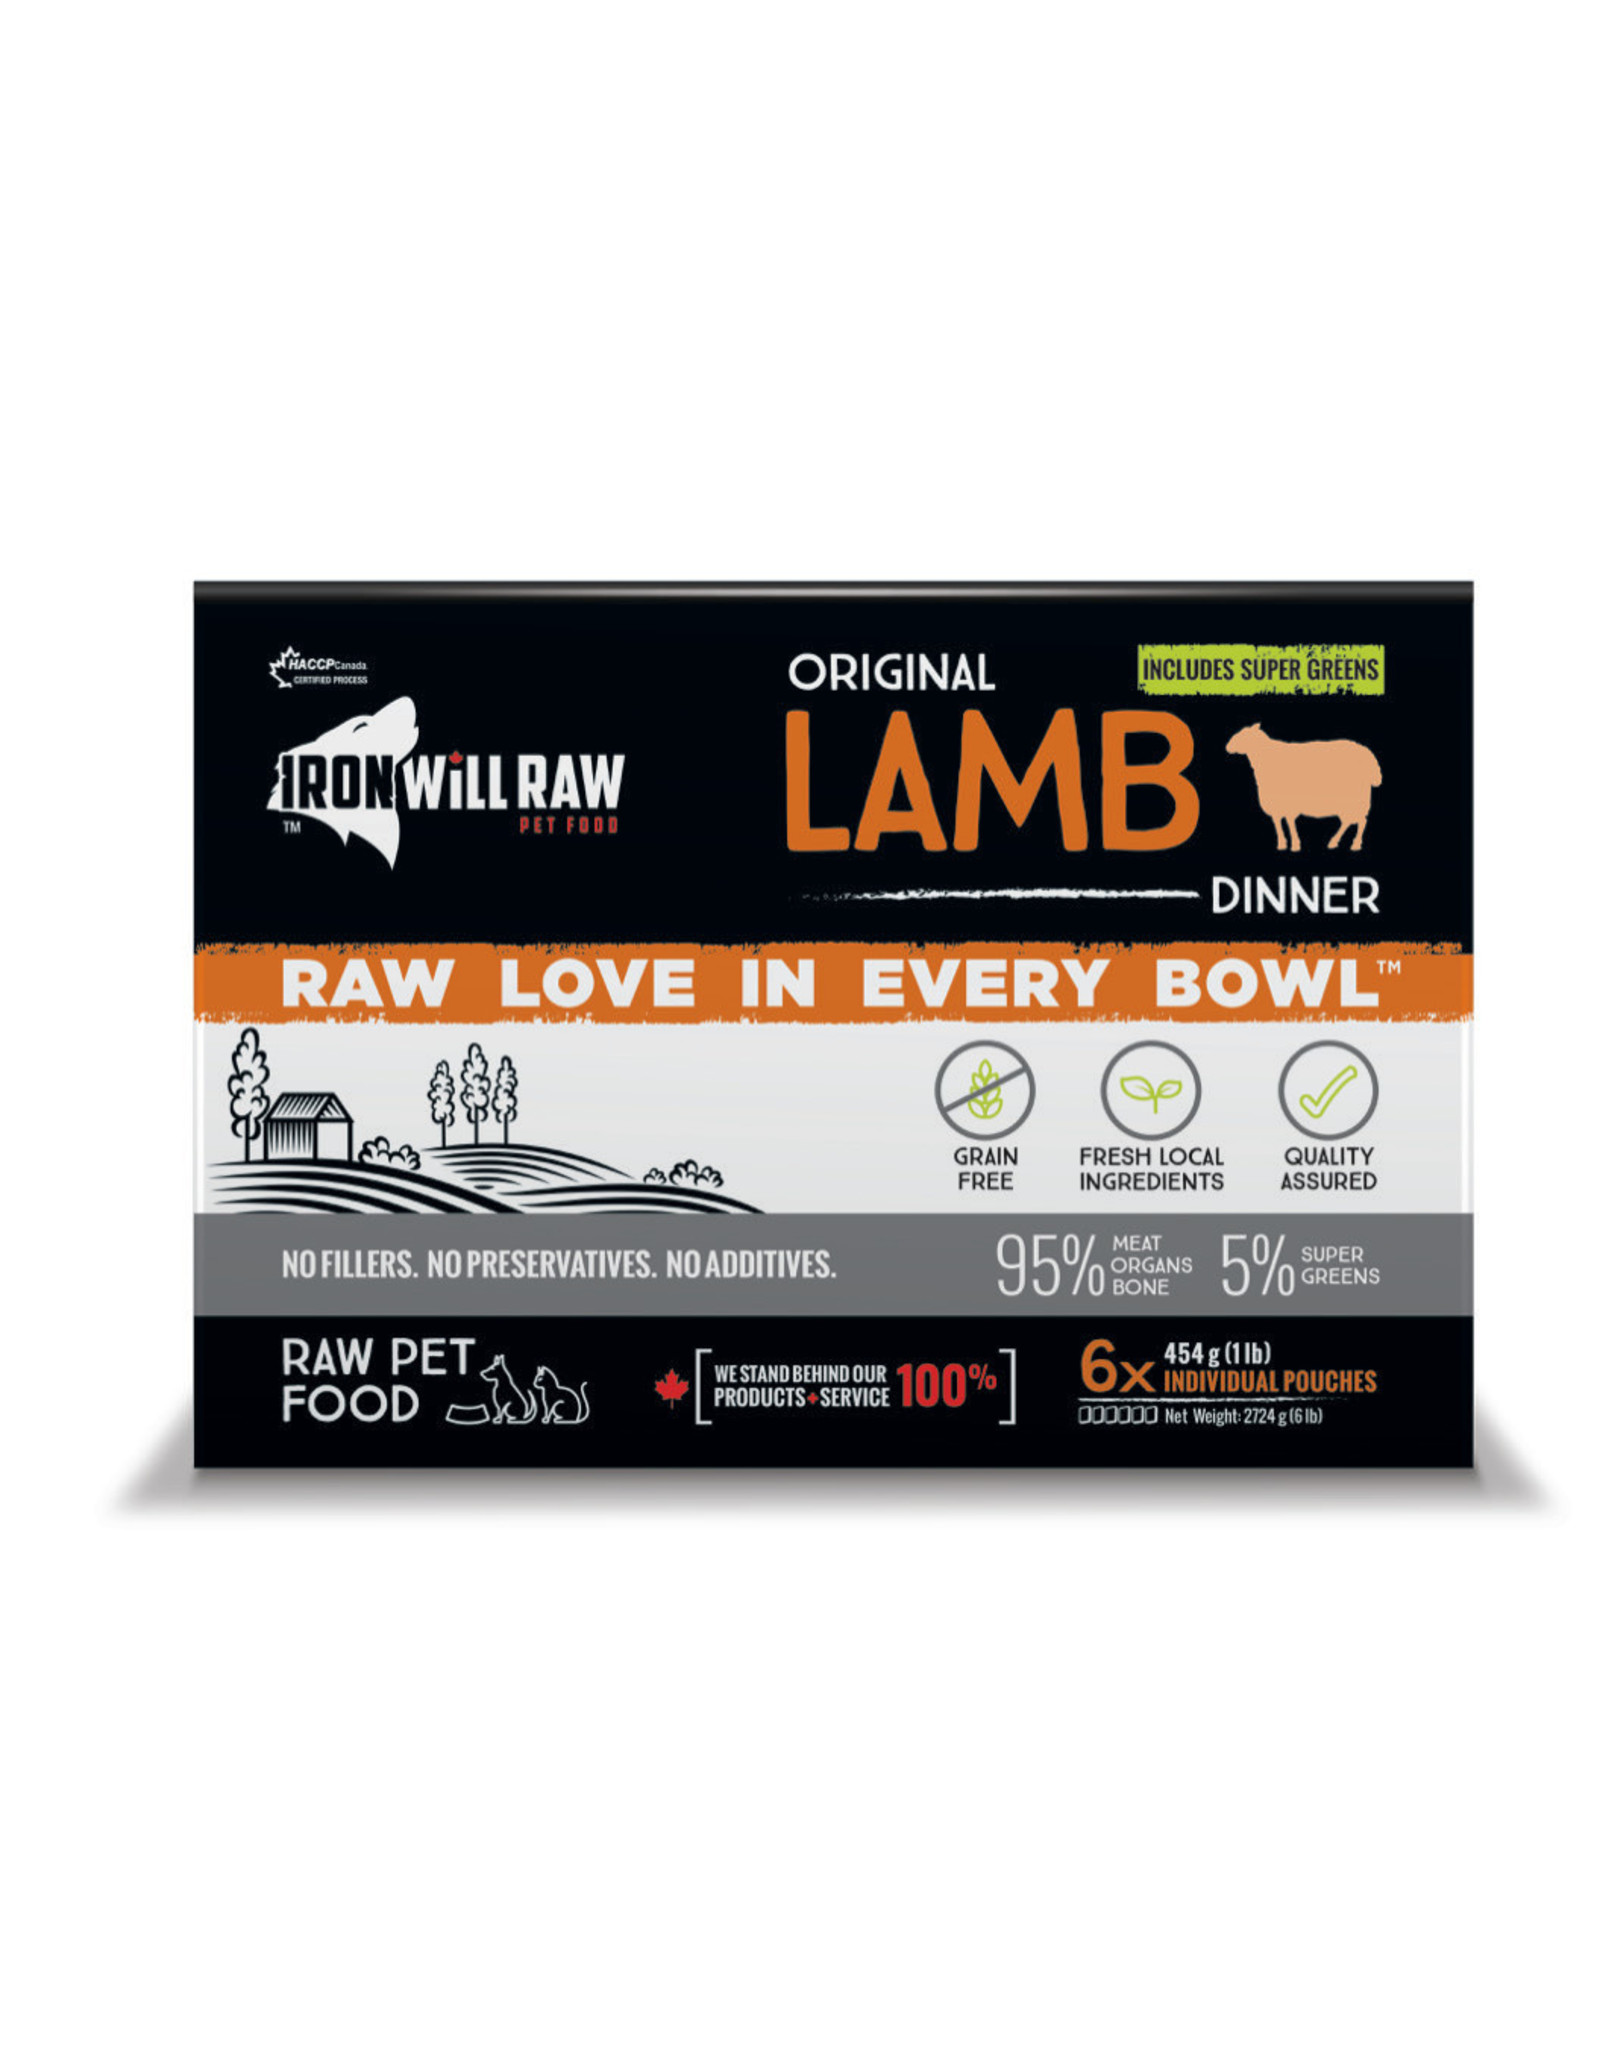 Iron Will Raw Iron Will Raw - Original Lamb 6LB